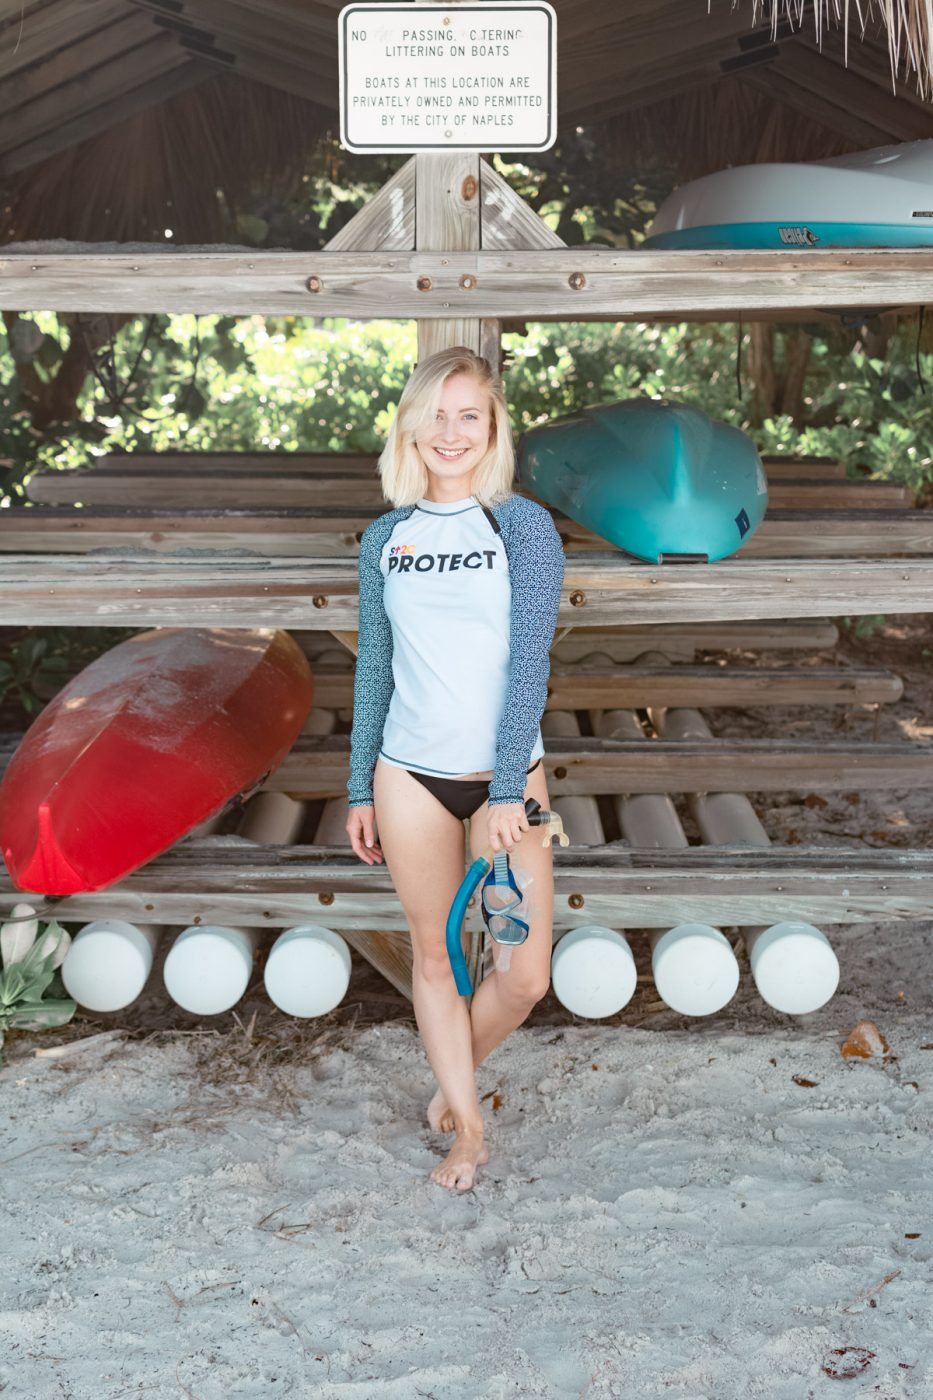 Jenny in a rashguard from Cabana Life